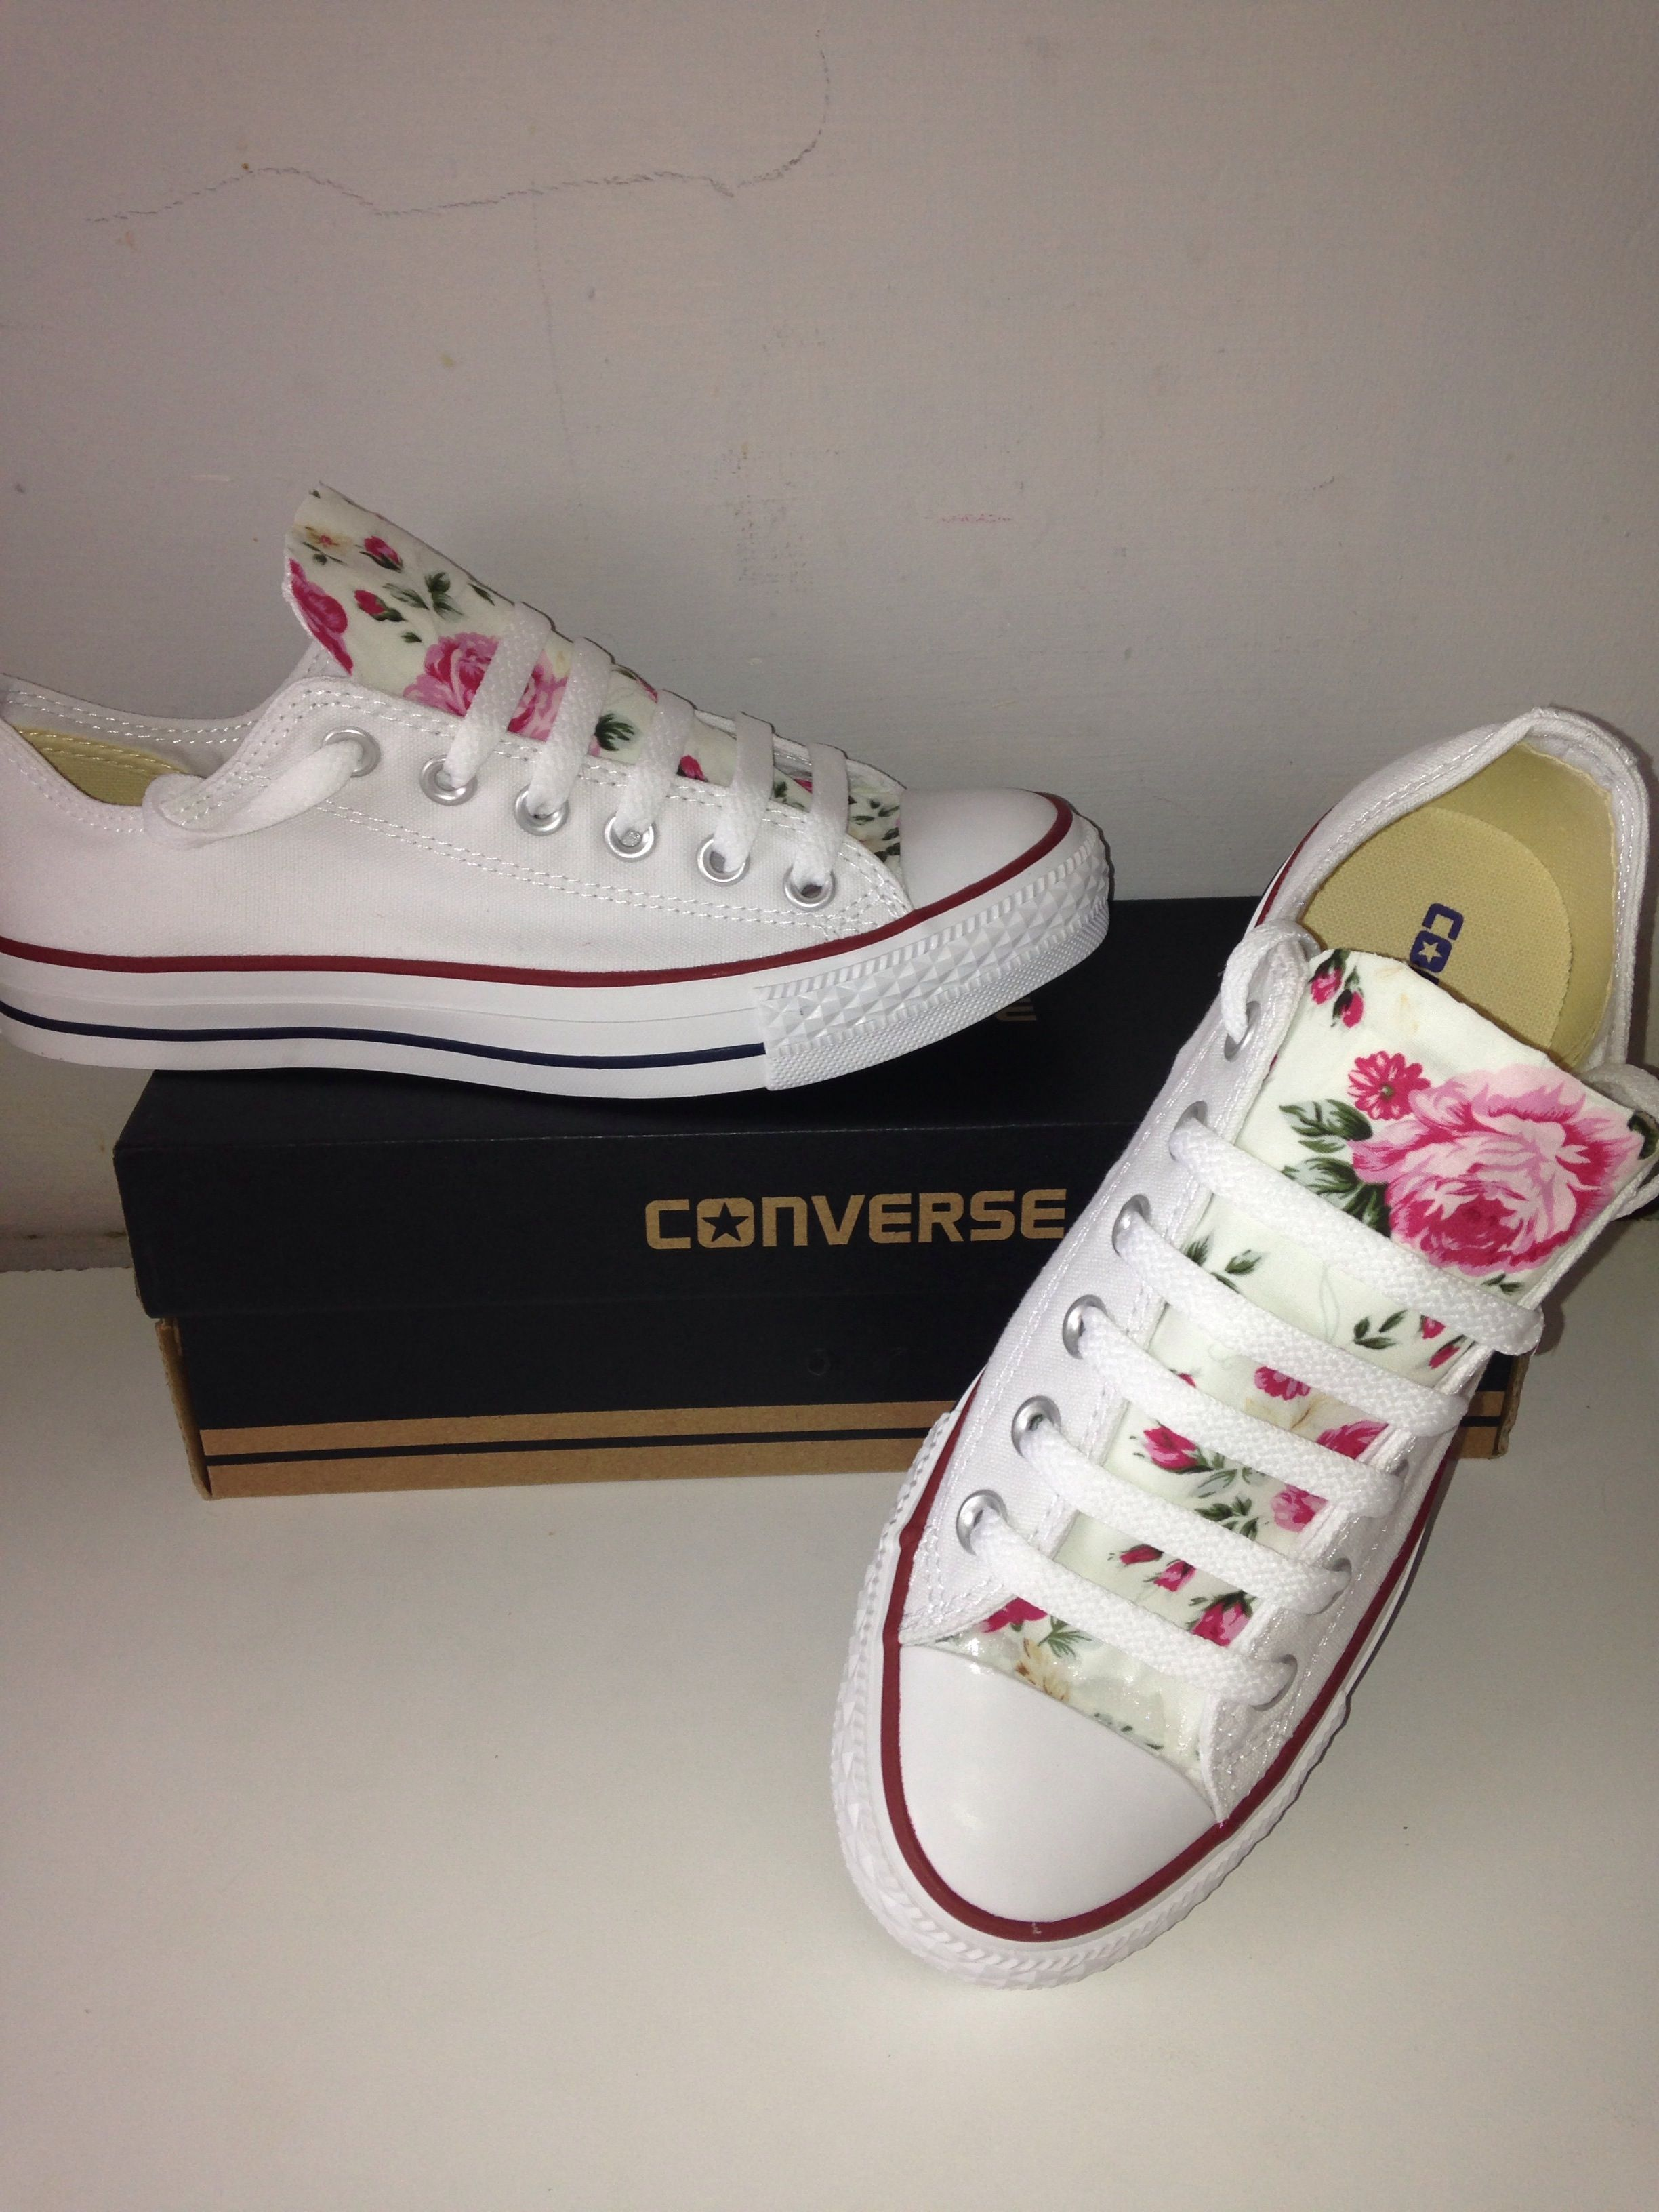 Floral Rose Converse Flat White Low Top Chucks Chuck